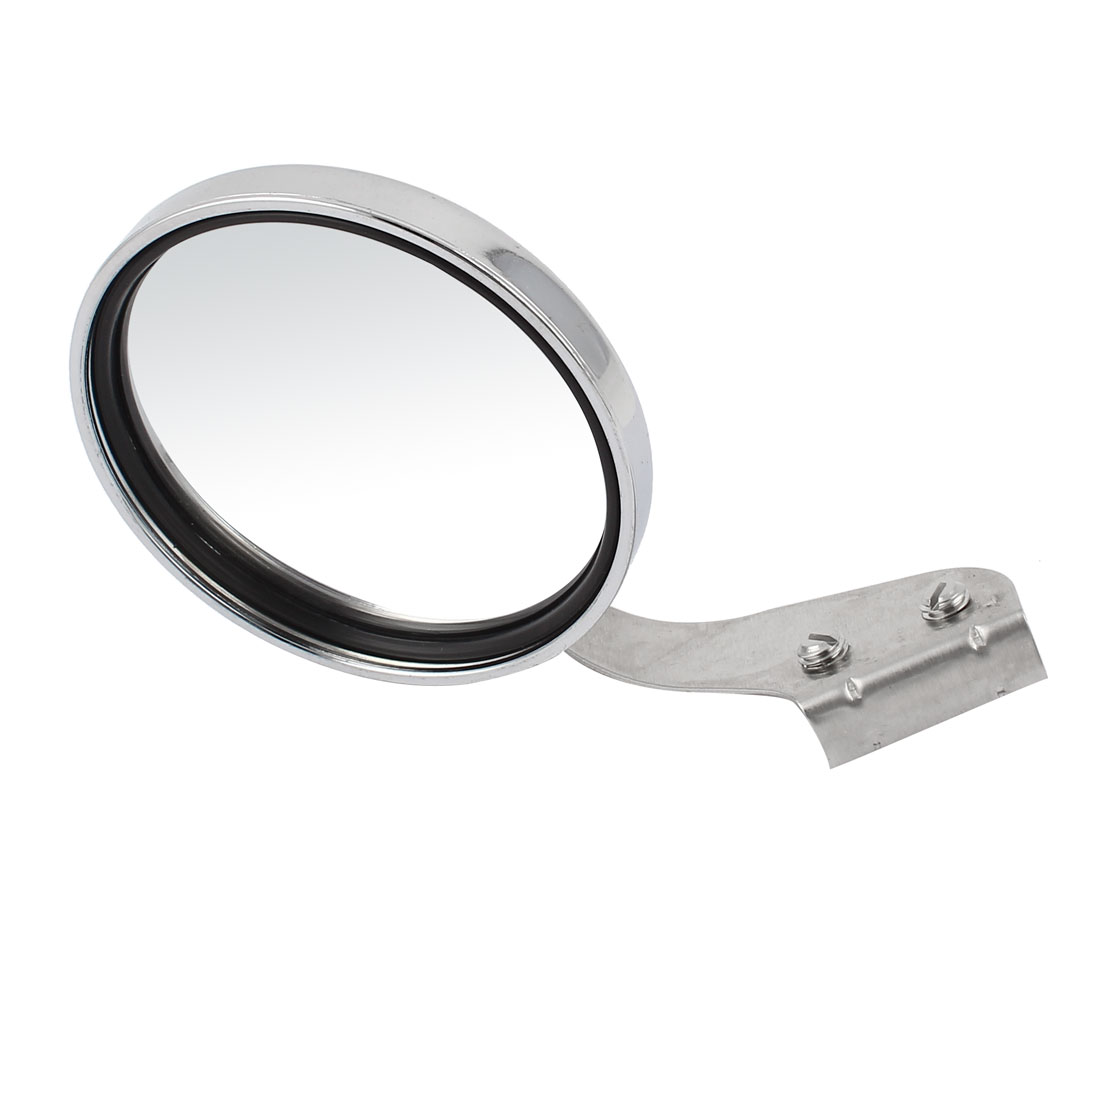 Silver Tone Round Shell Adjustable Angle Left Sideview Assistant Mirror for Car